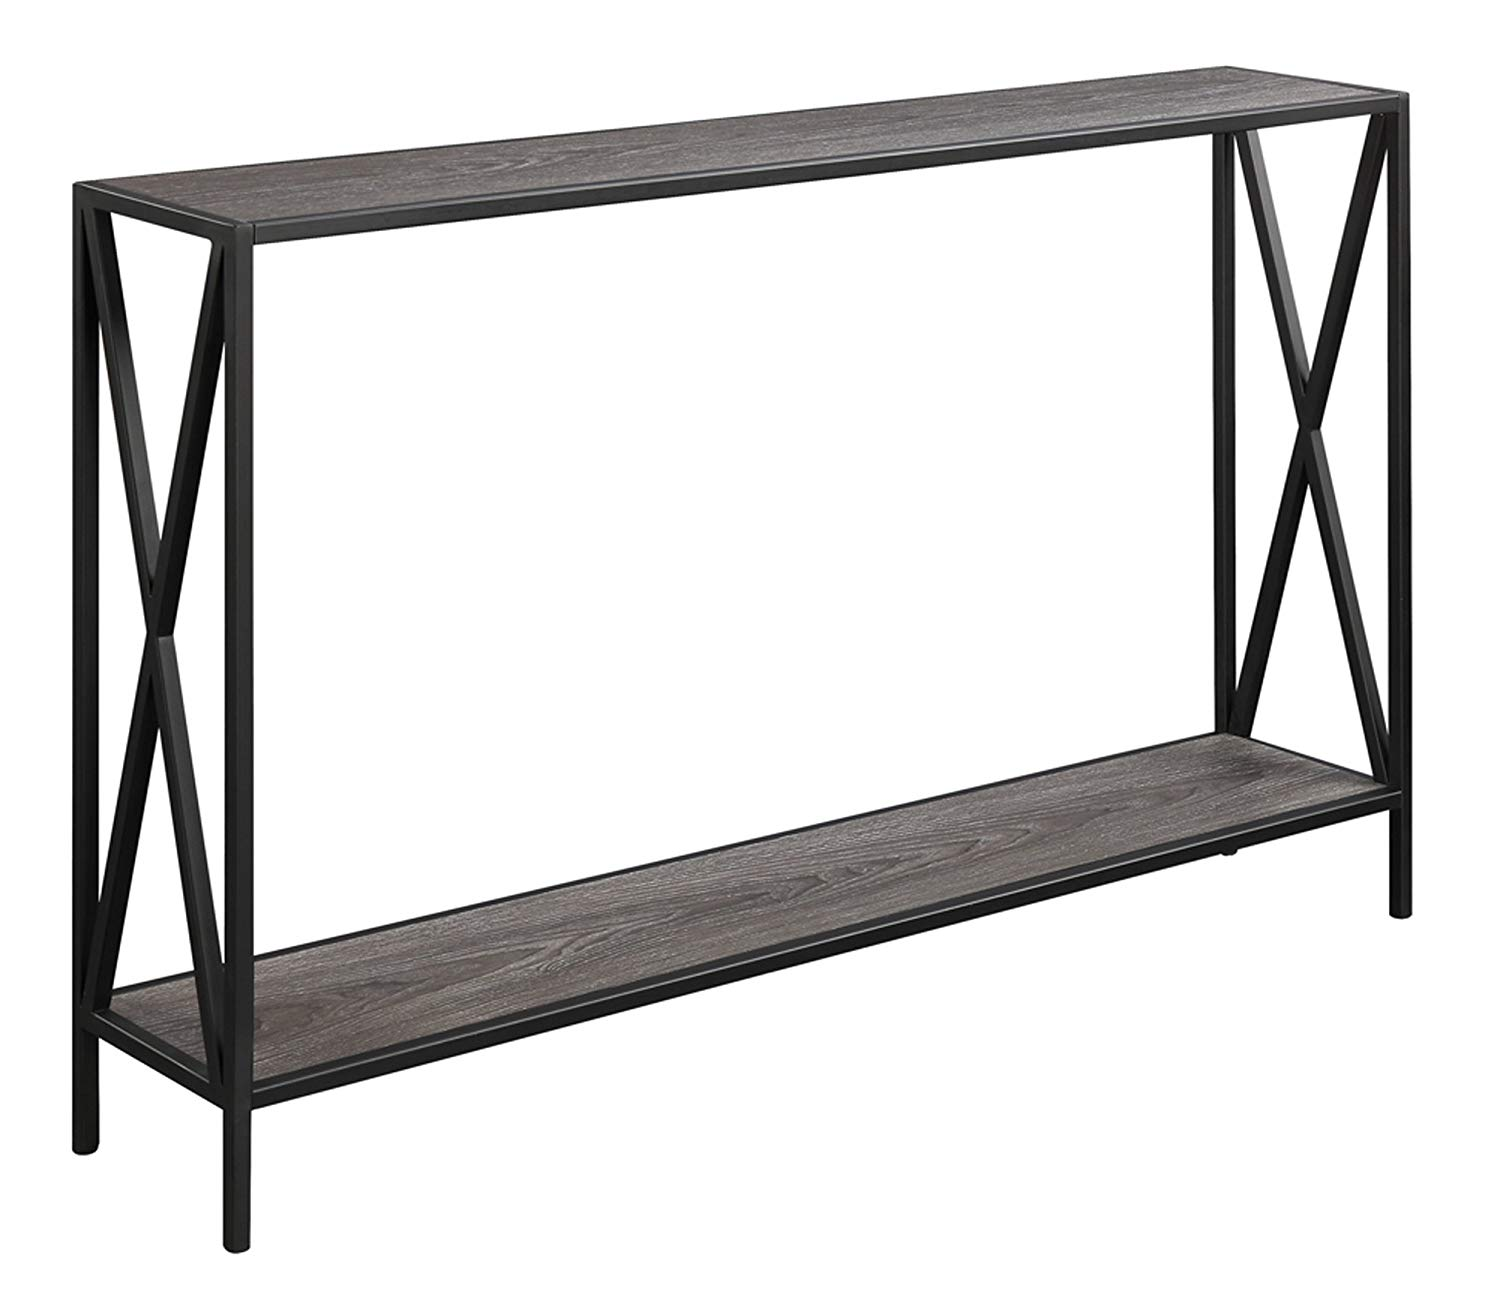 convenience concepts tucson console table weathered gray accent kitchen dining antique round wood sheesham nest tables parquet target ashley furniture bar height dale tiffany